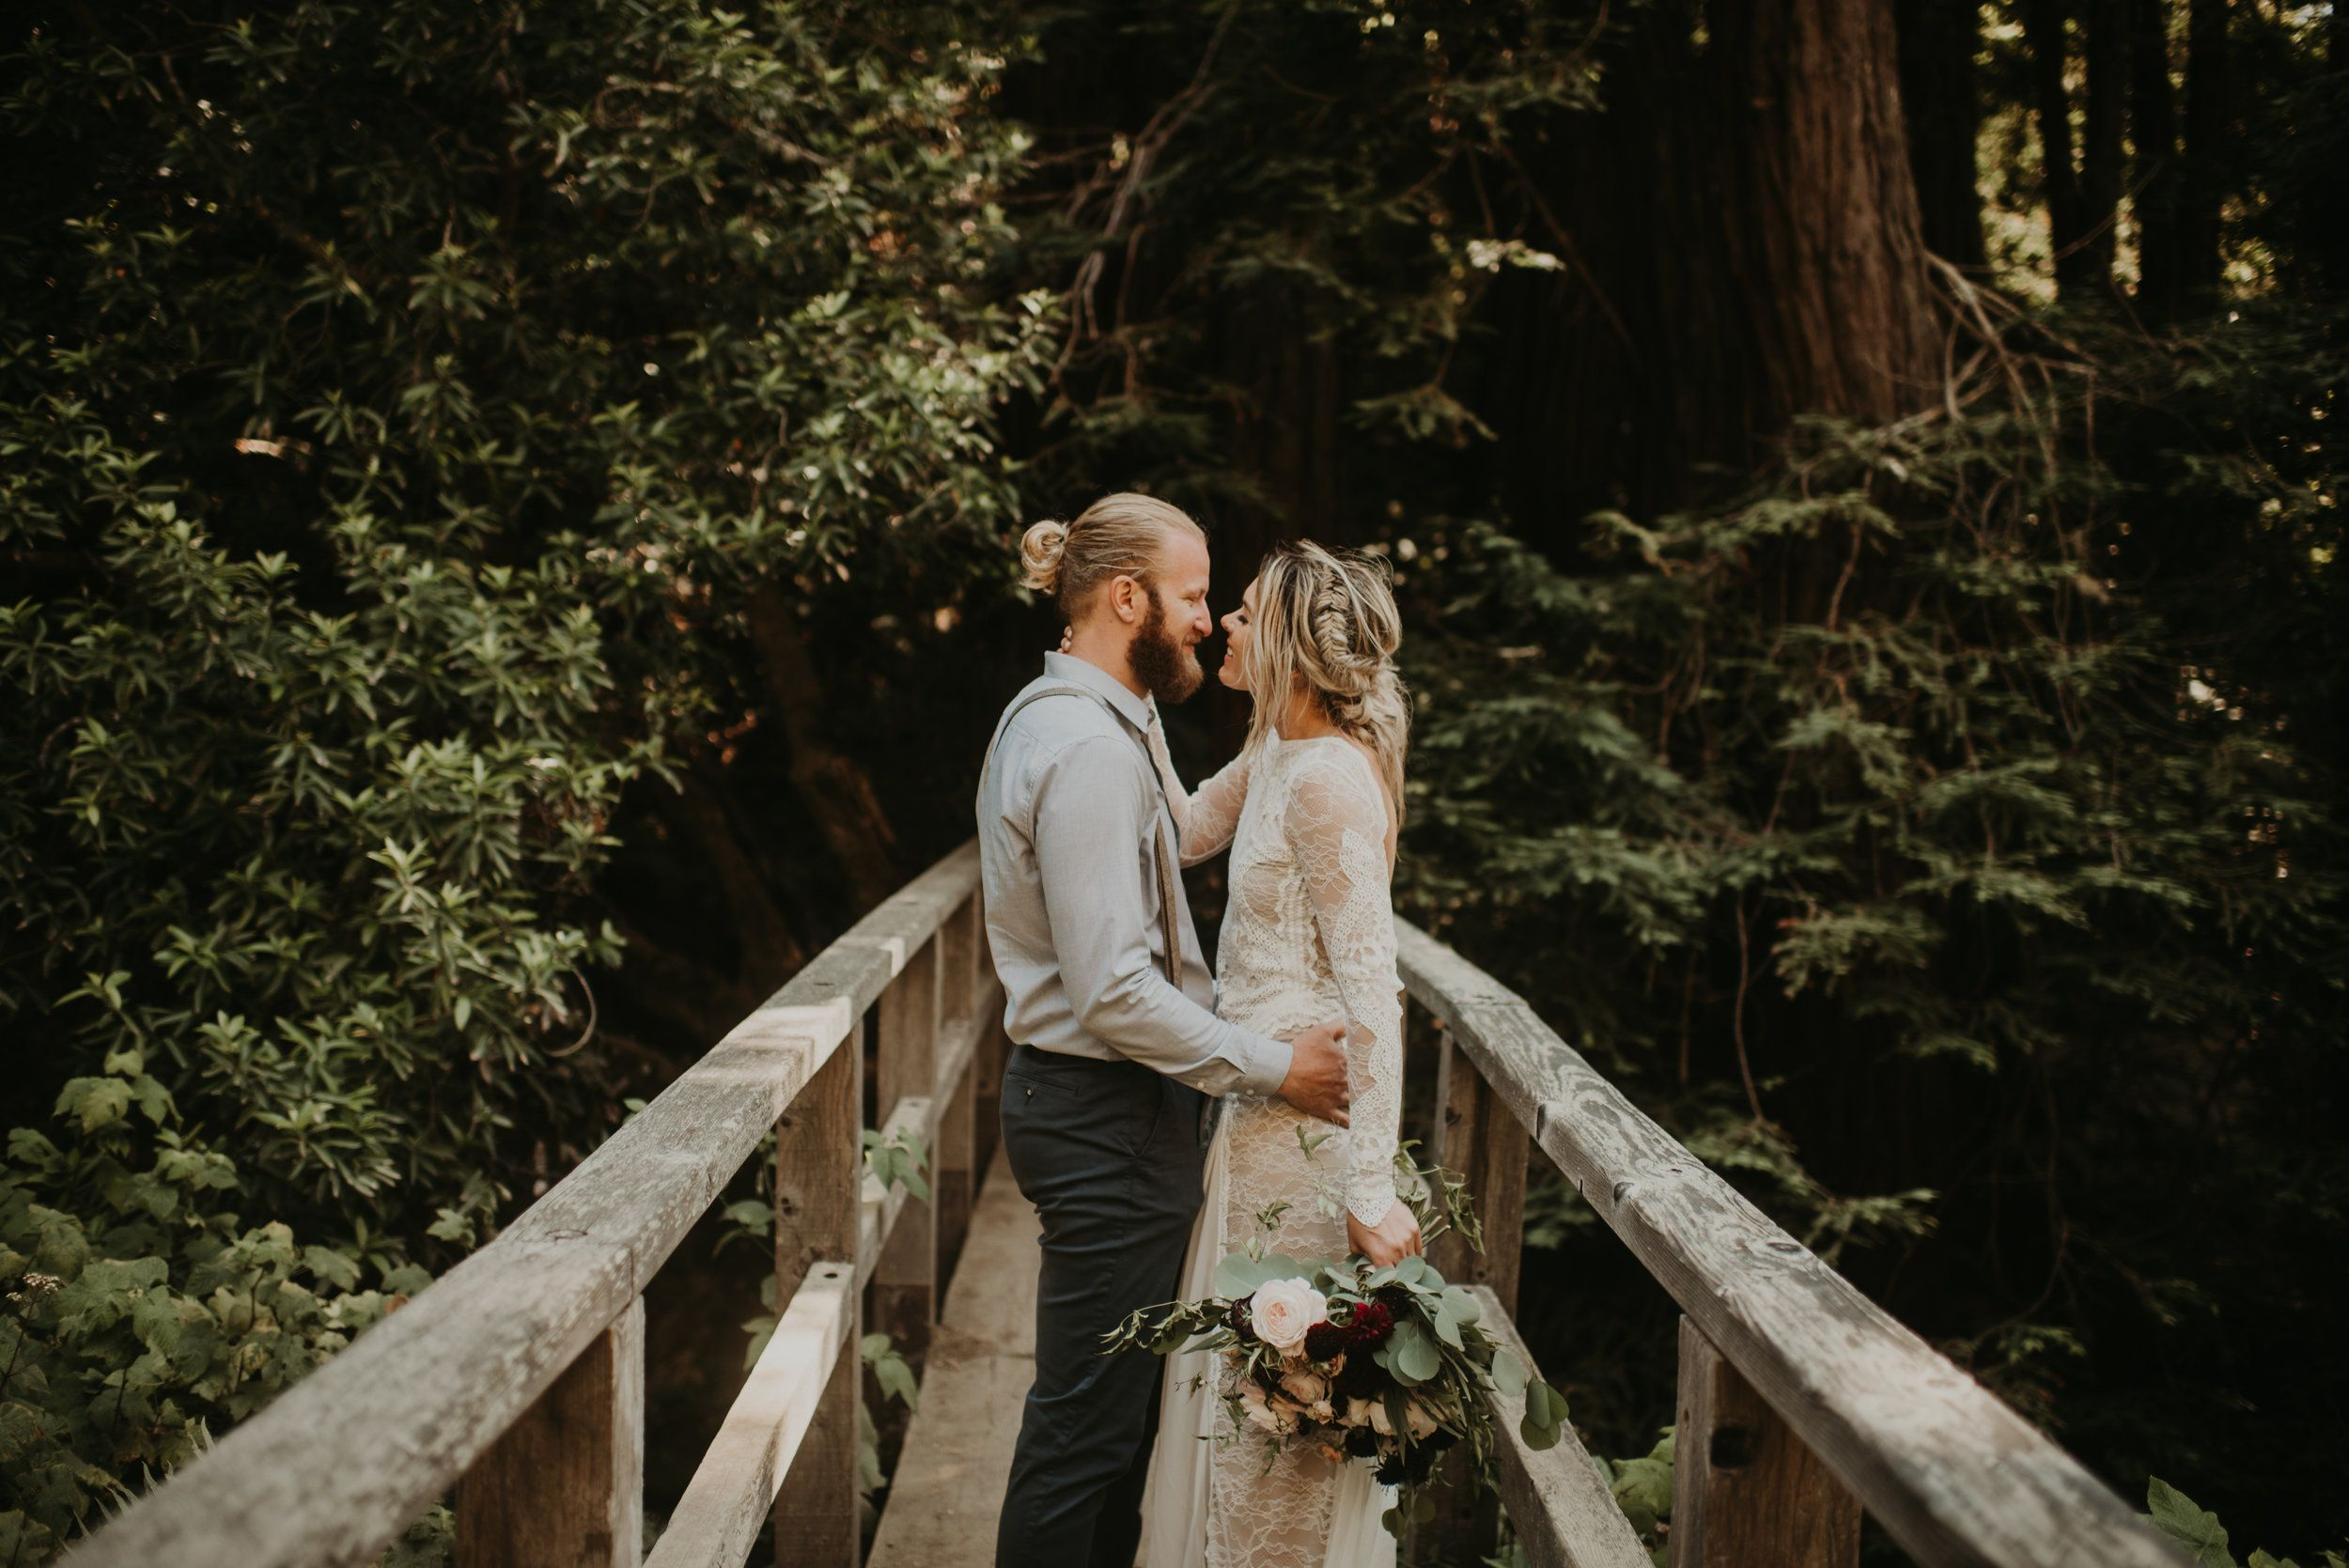 070b9fc3b1 Joanna + Brian West Coast Intimate Adventure Wedding in Big Sur, CA by  Seattle Wedding Photographer Kamra Fuller Photography